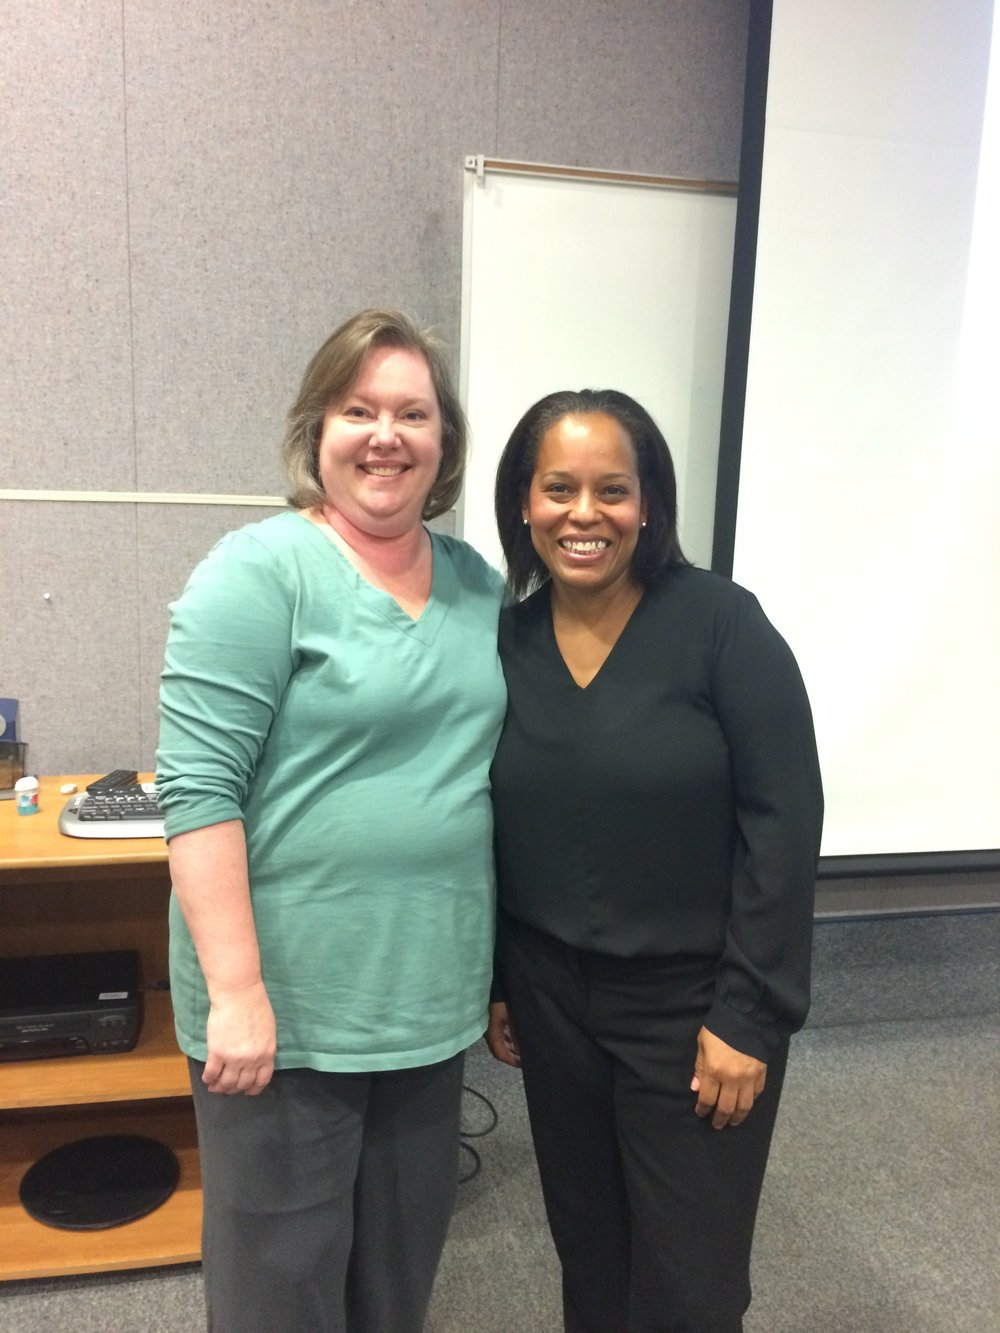 Foreign Language instructor Lori Pierce and US Foreign Service Diplomat Kali Jones.